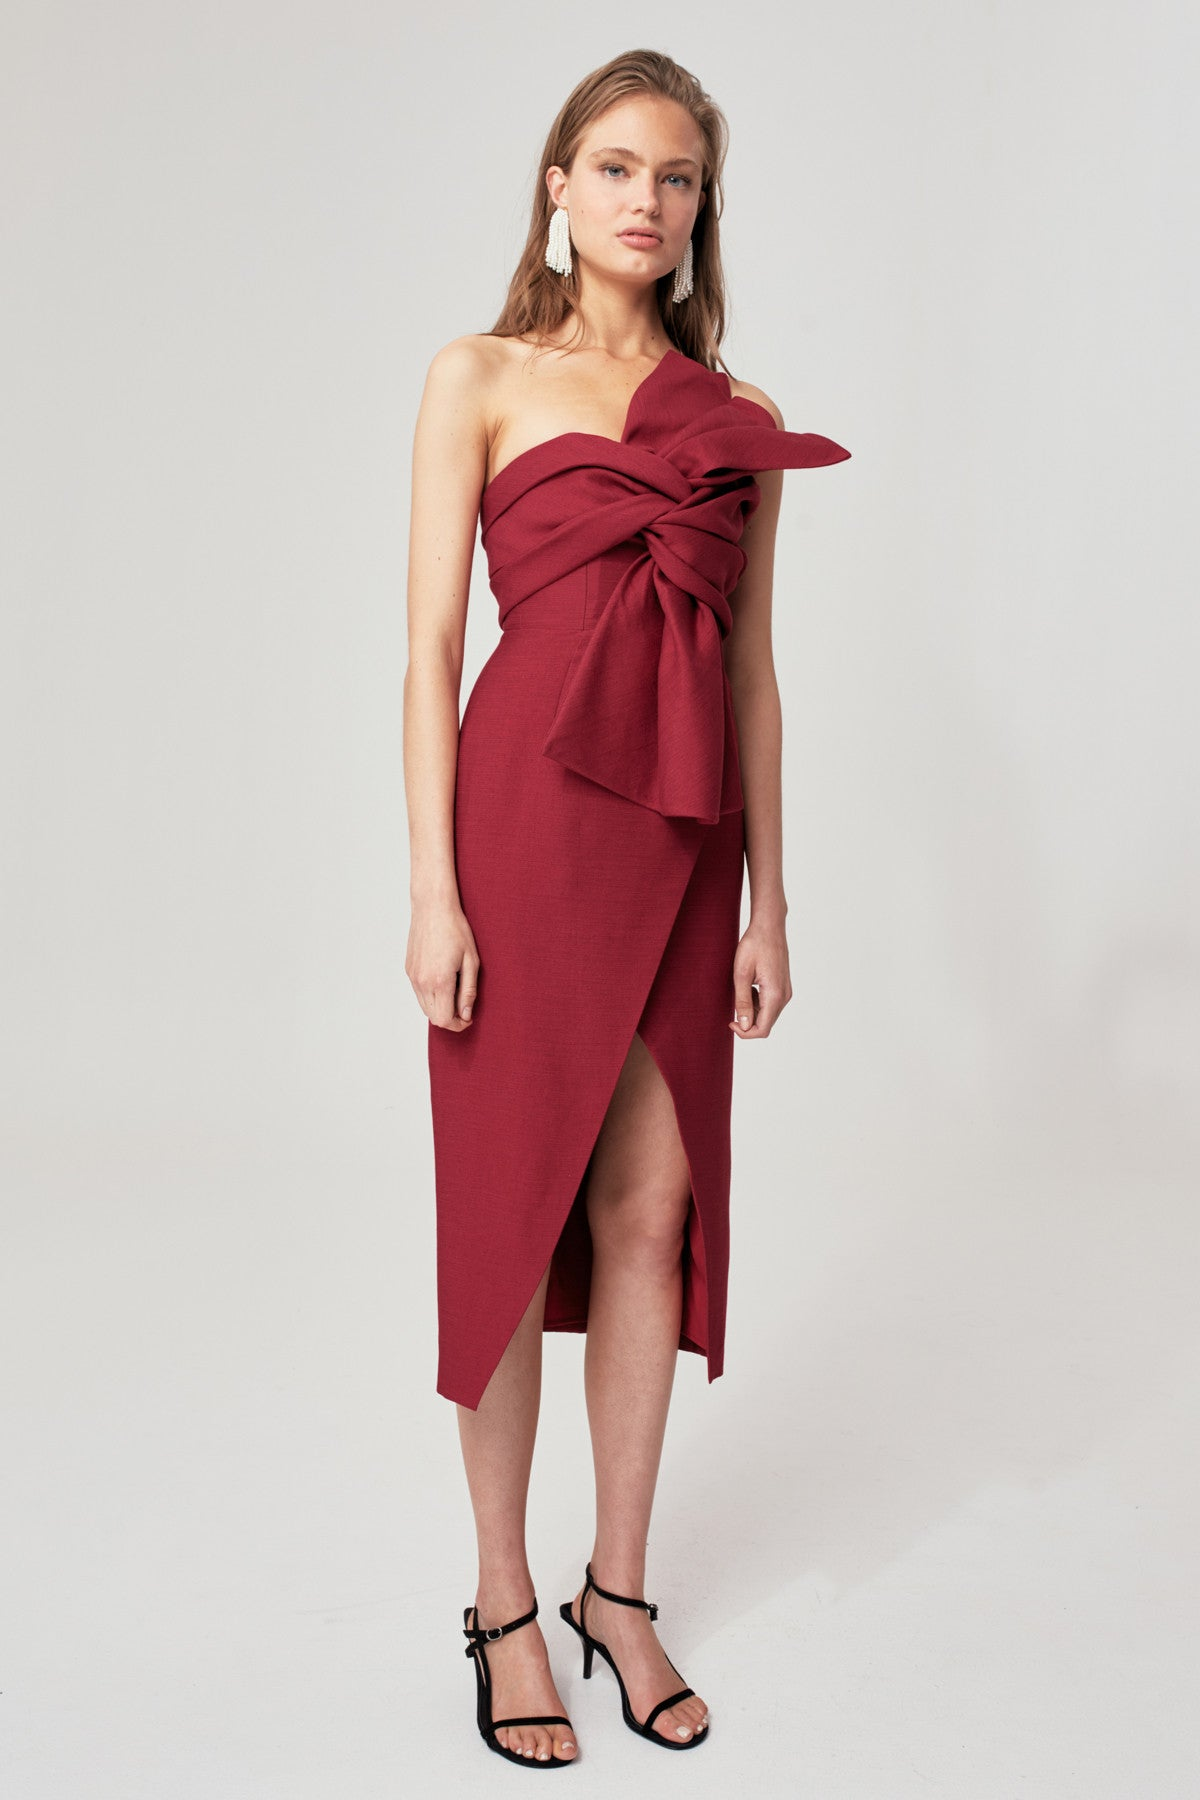 EACH OTHER MIDI DRESS berry